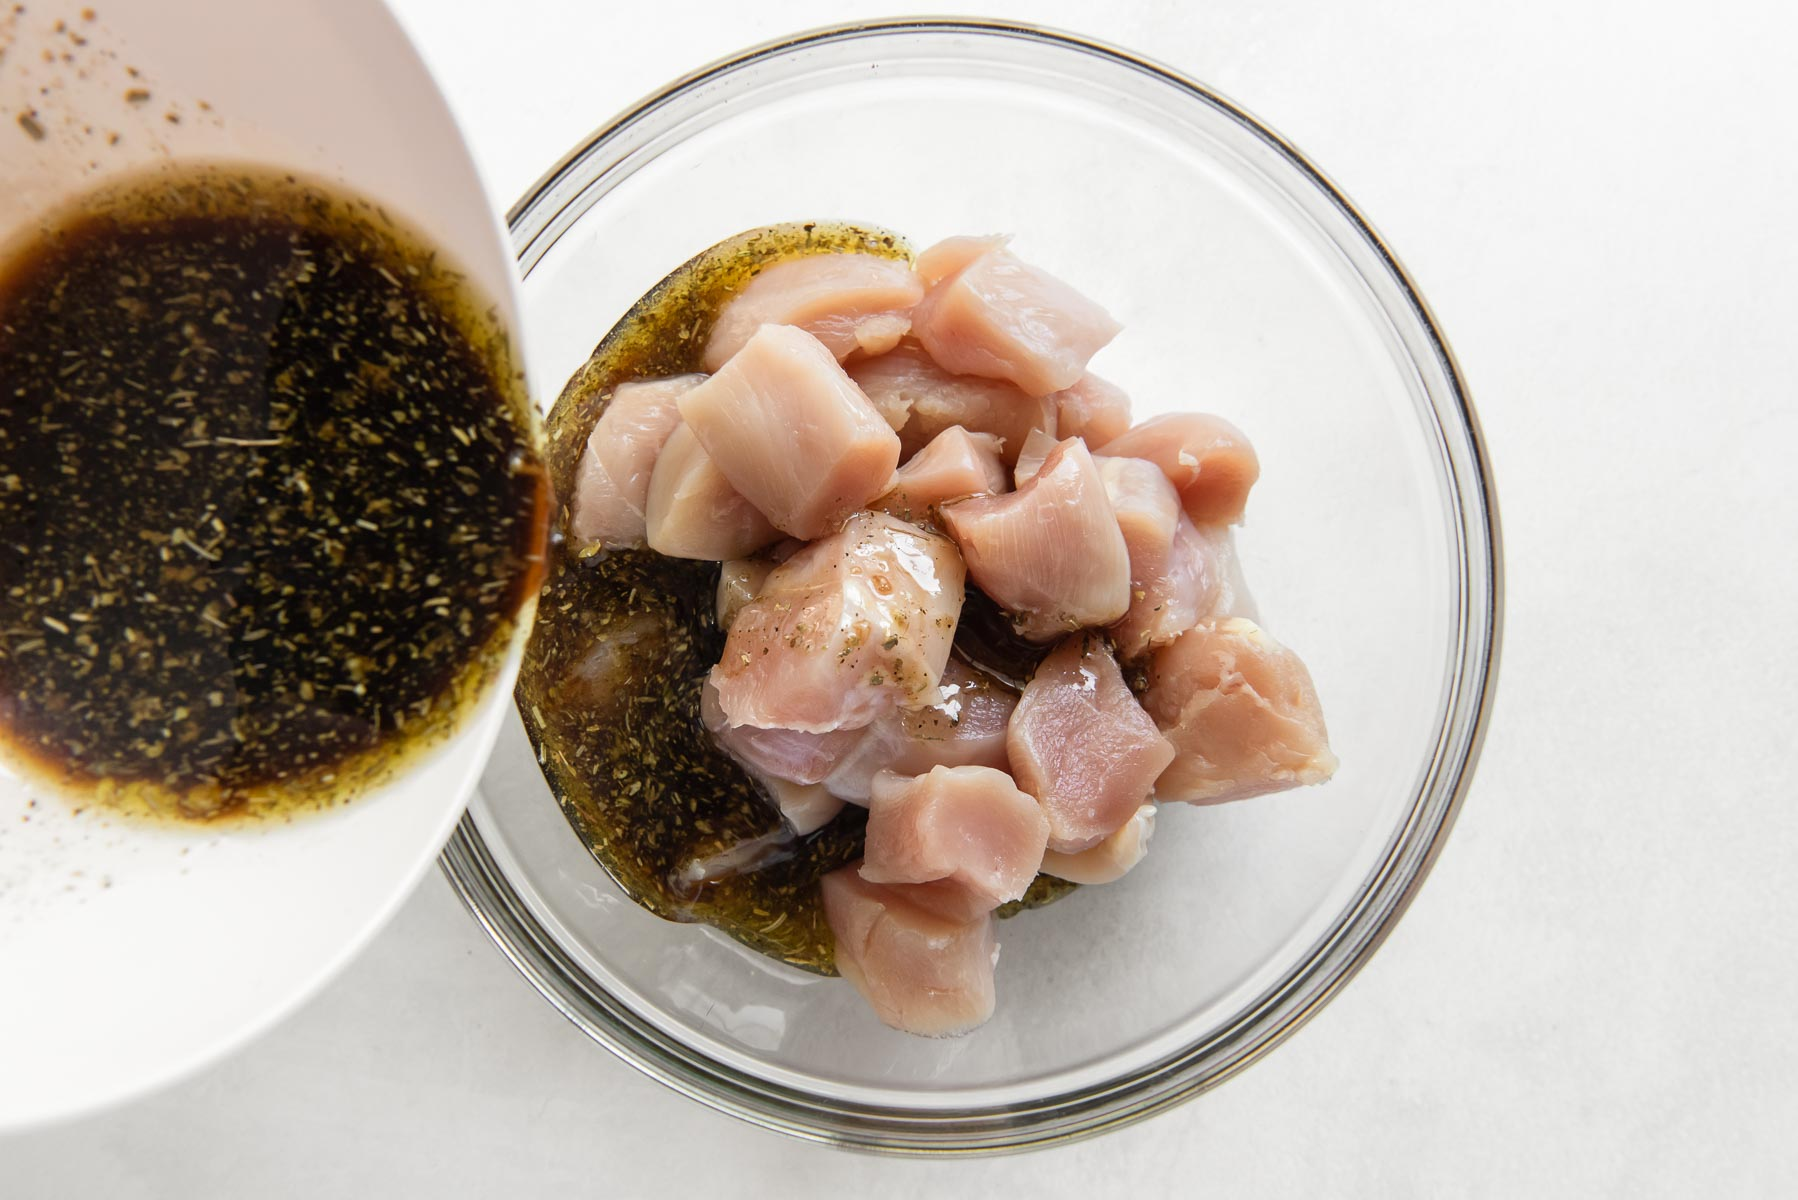 pouring marinade onto chicken pieces in bowl